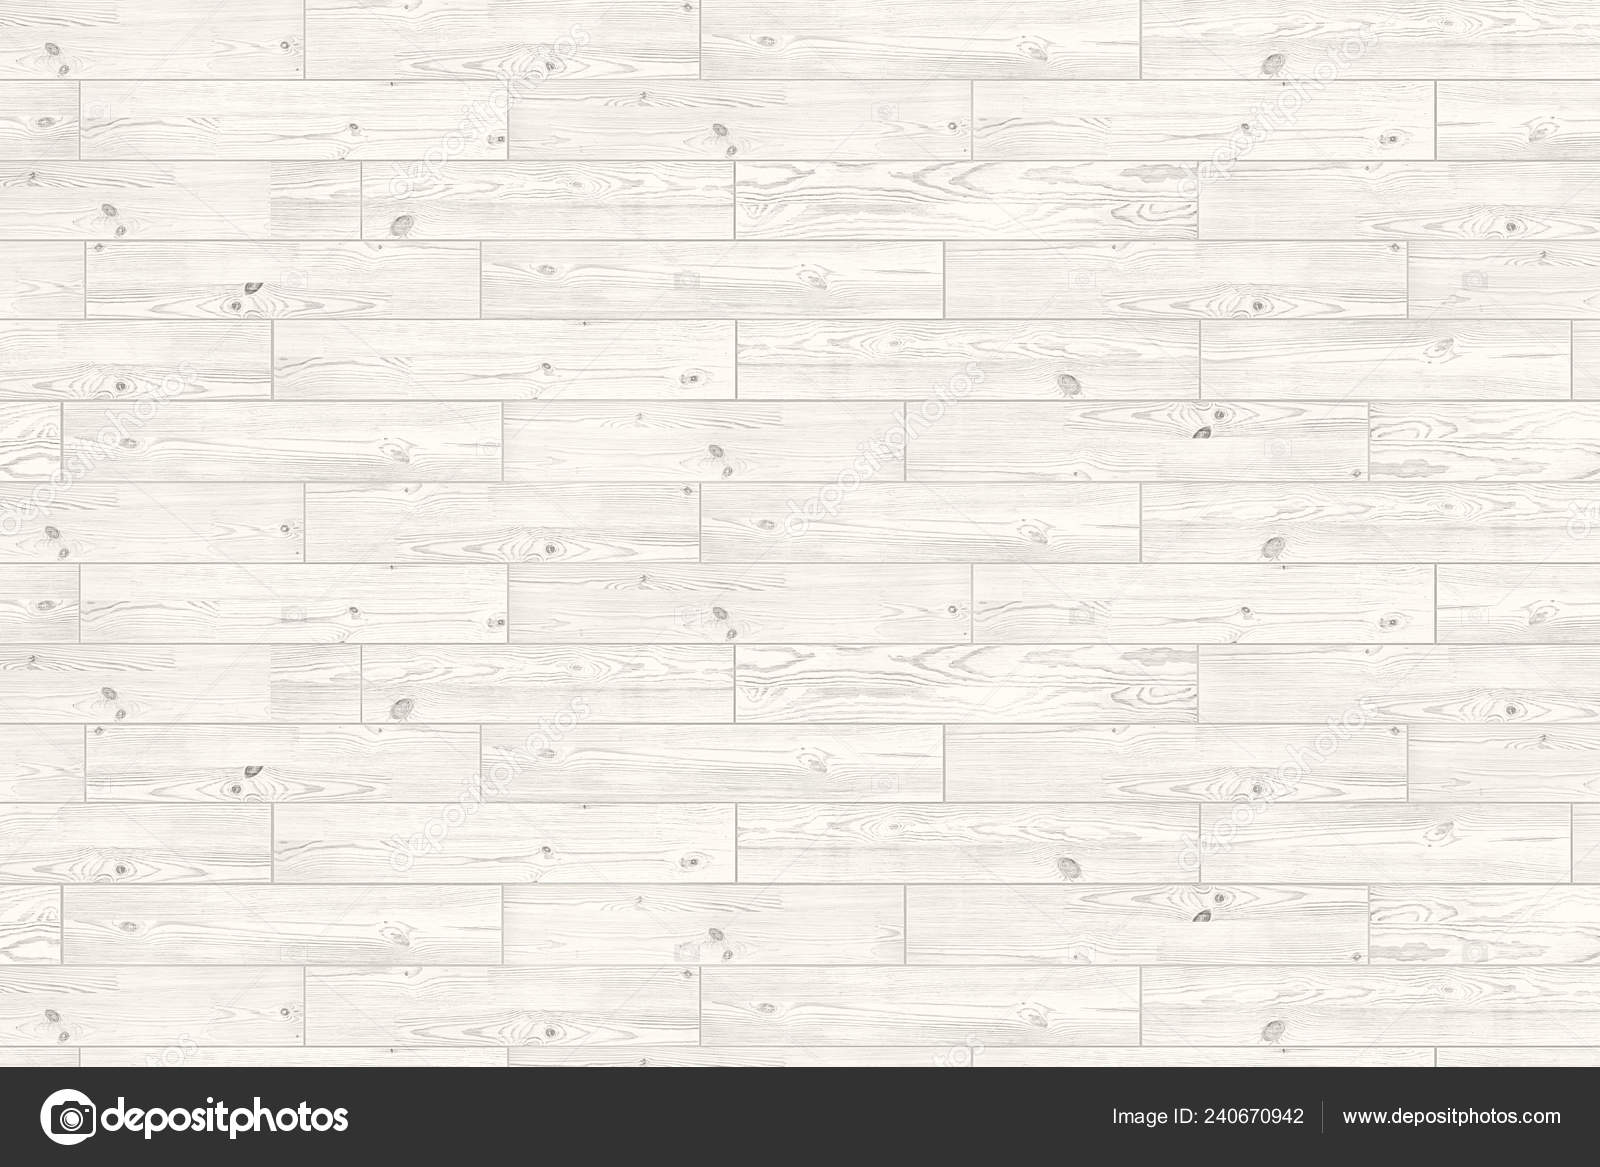 White wood background  Rustic wooden wall texture  Wooden